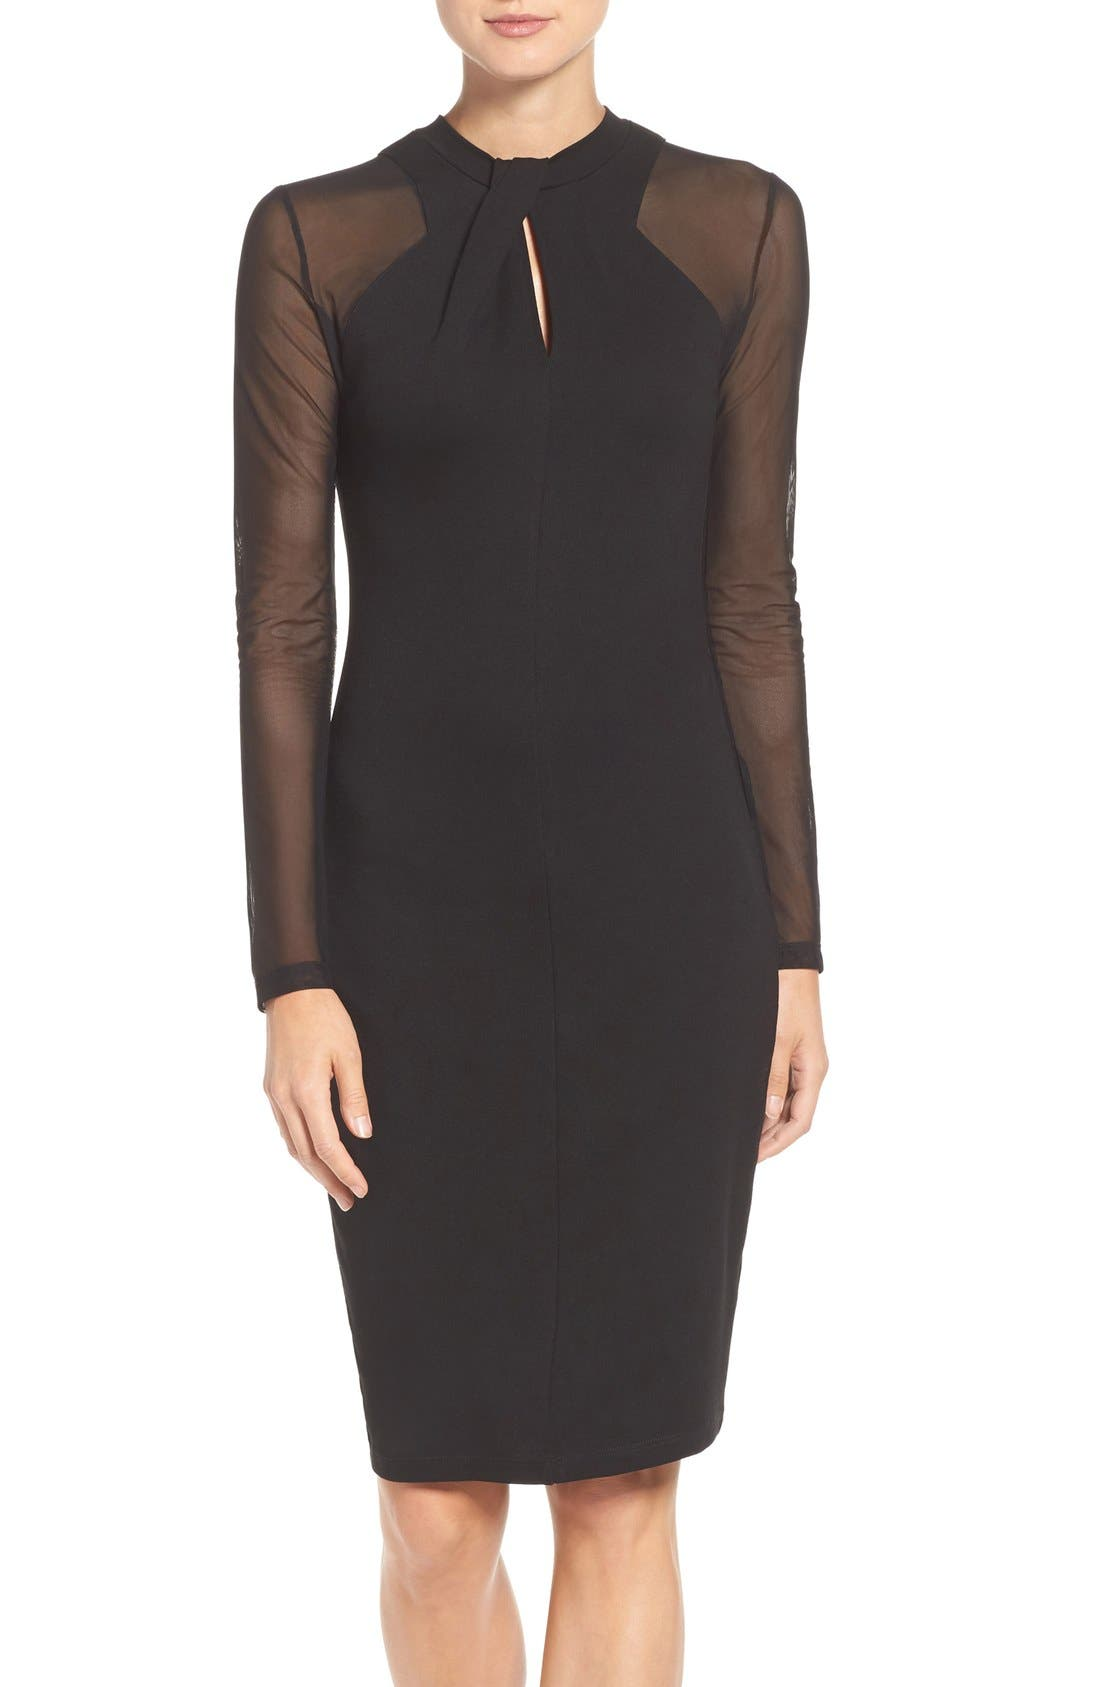 'Tania Tuck' Mesh Sleeve Sheath Dress,                             Main thumbnail 1, color,                             001